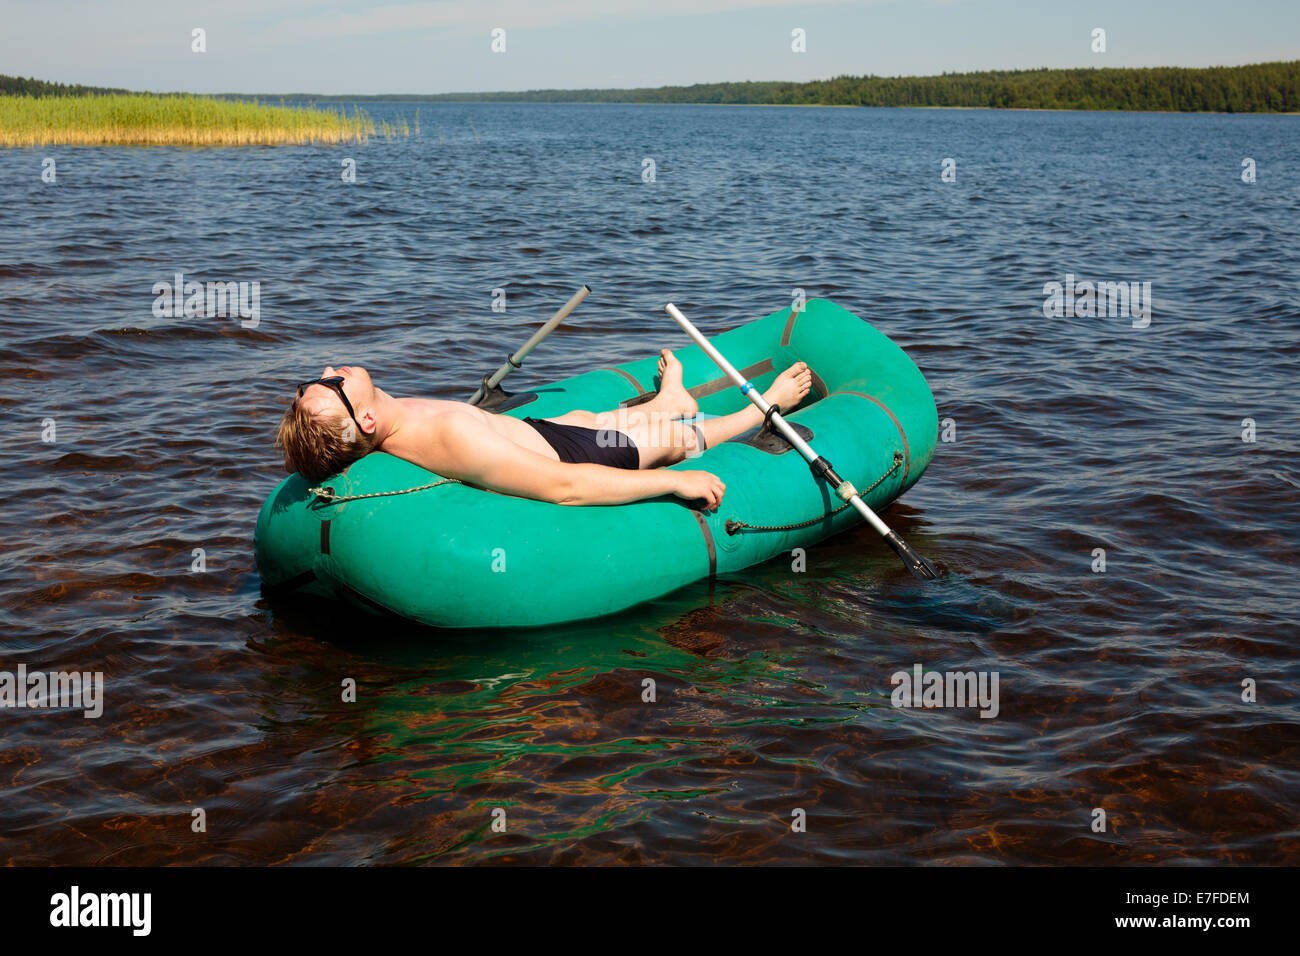 Man resting in a rubber boat - Stock Image